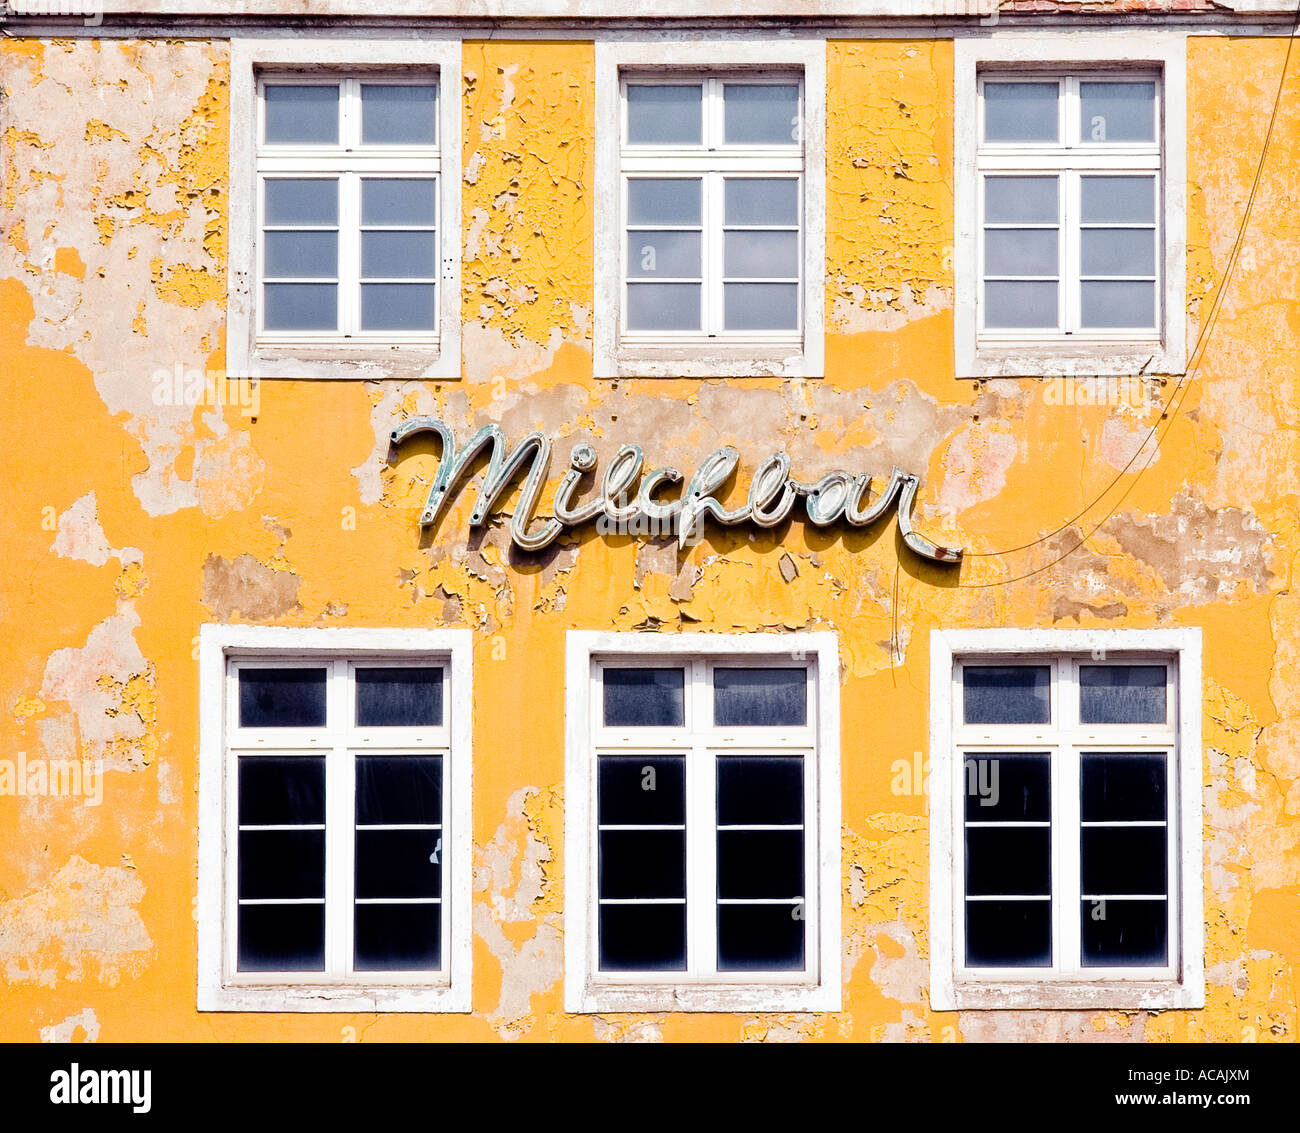 Old writing (Milchbar - milk bar) on the wall of a house in Stralsund, Mecklenburg-Western Pomerania, Germany - Stock Image